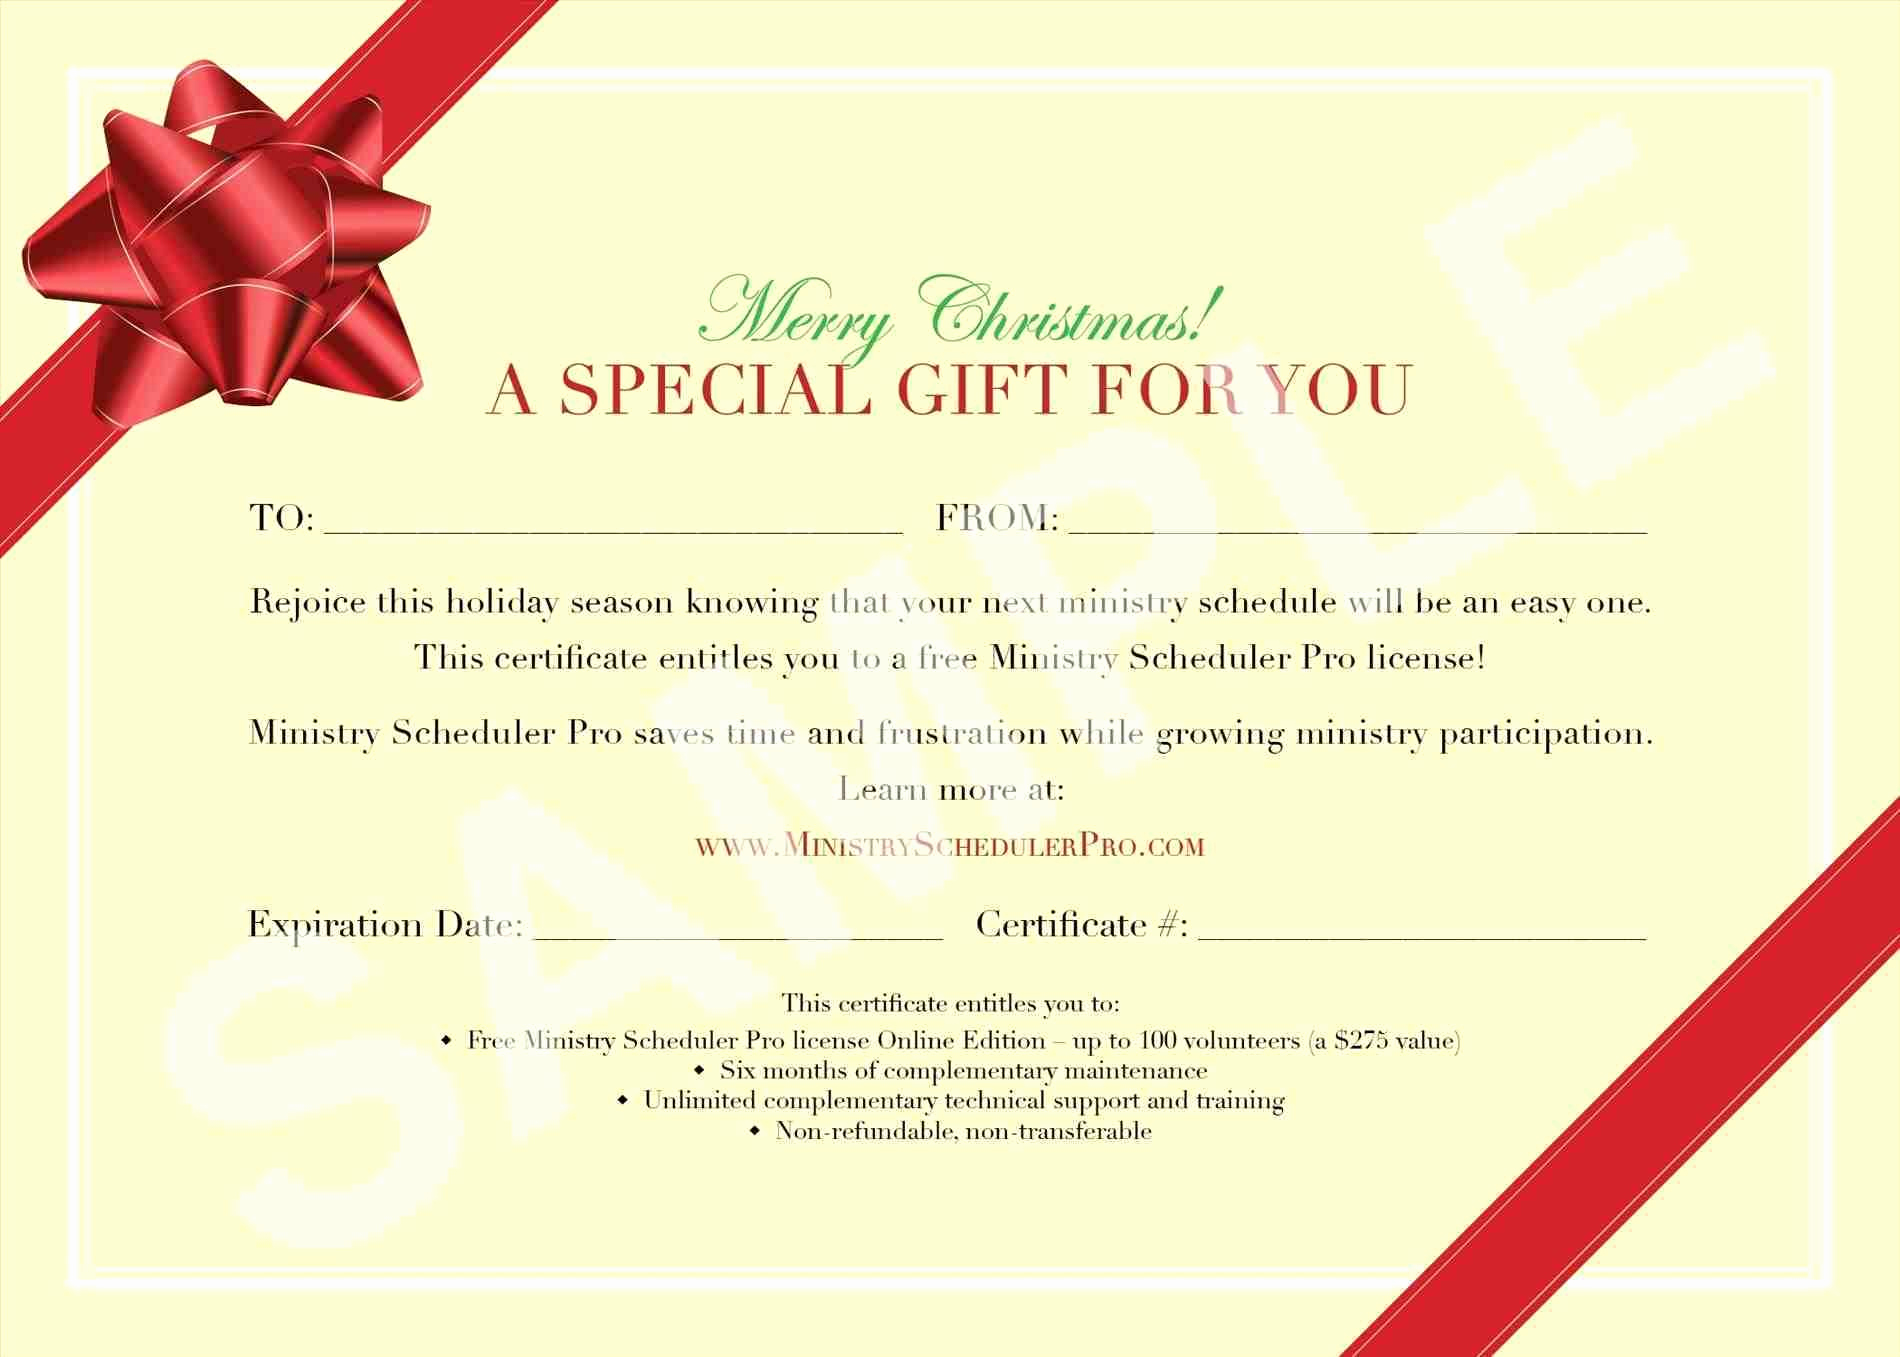 Homemade Gift Certificate Template New Homemade Voucher Template